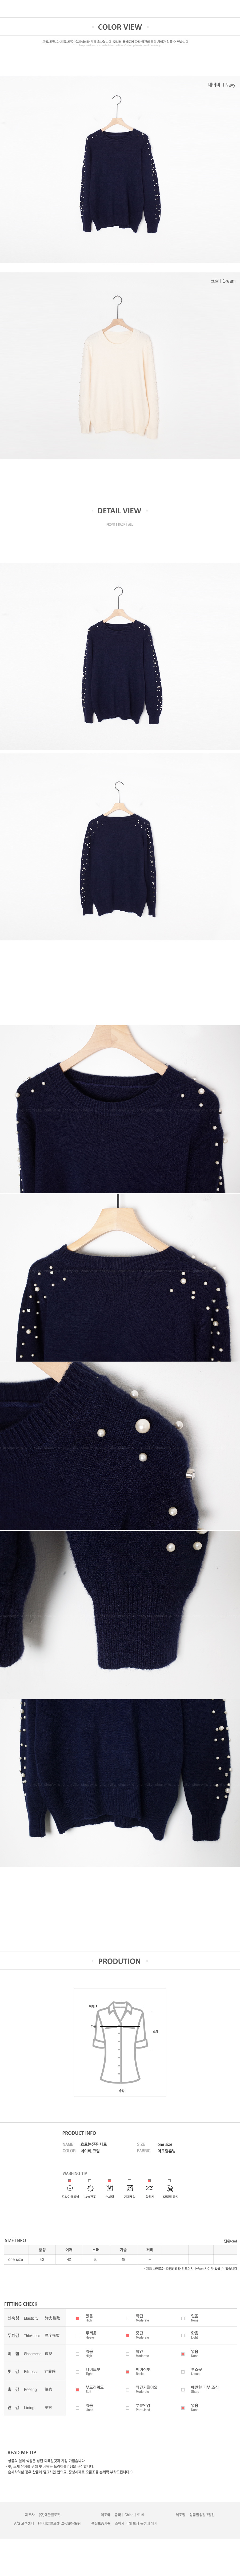 Flowing pearl knit